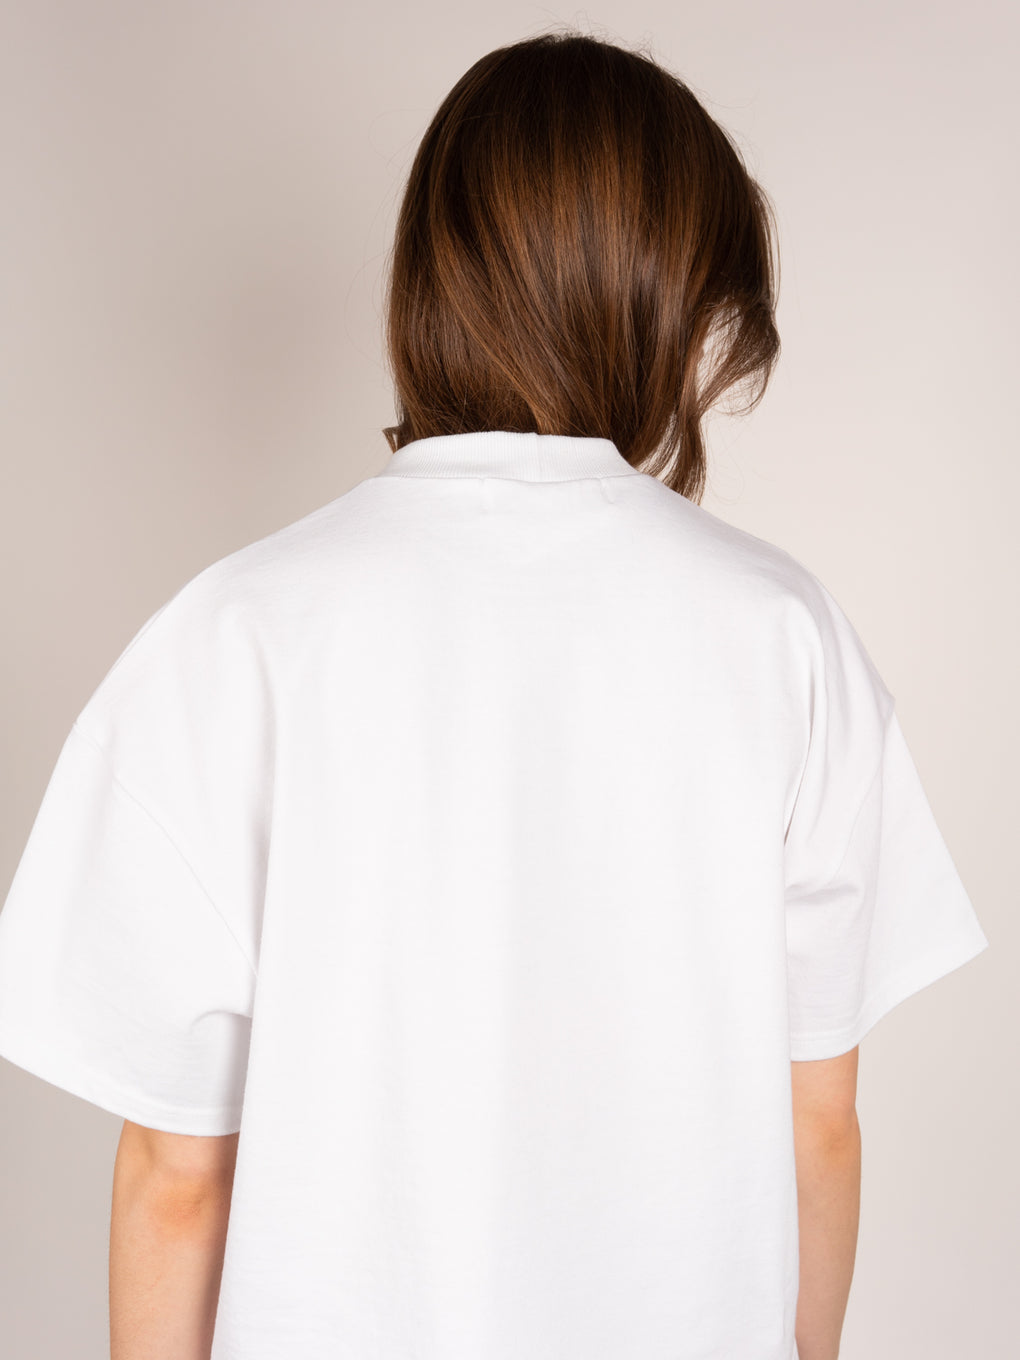 Square T-shirt White